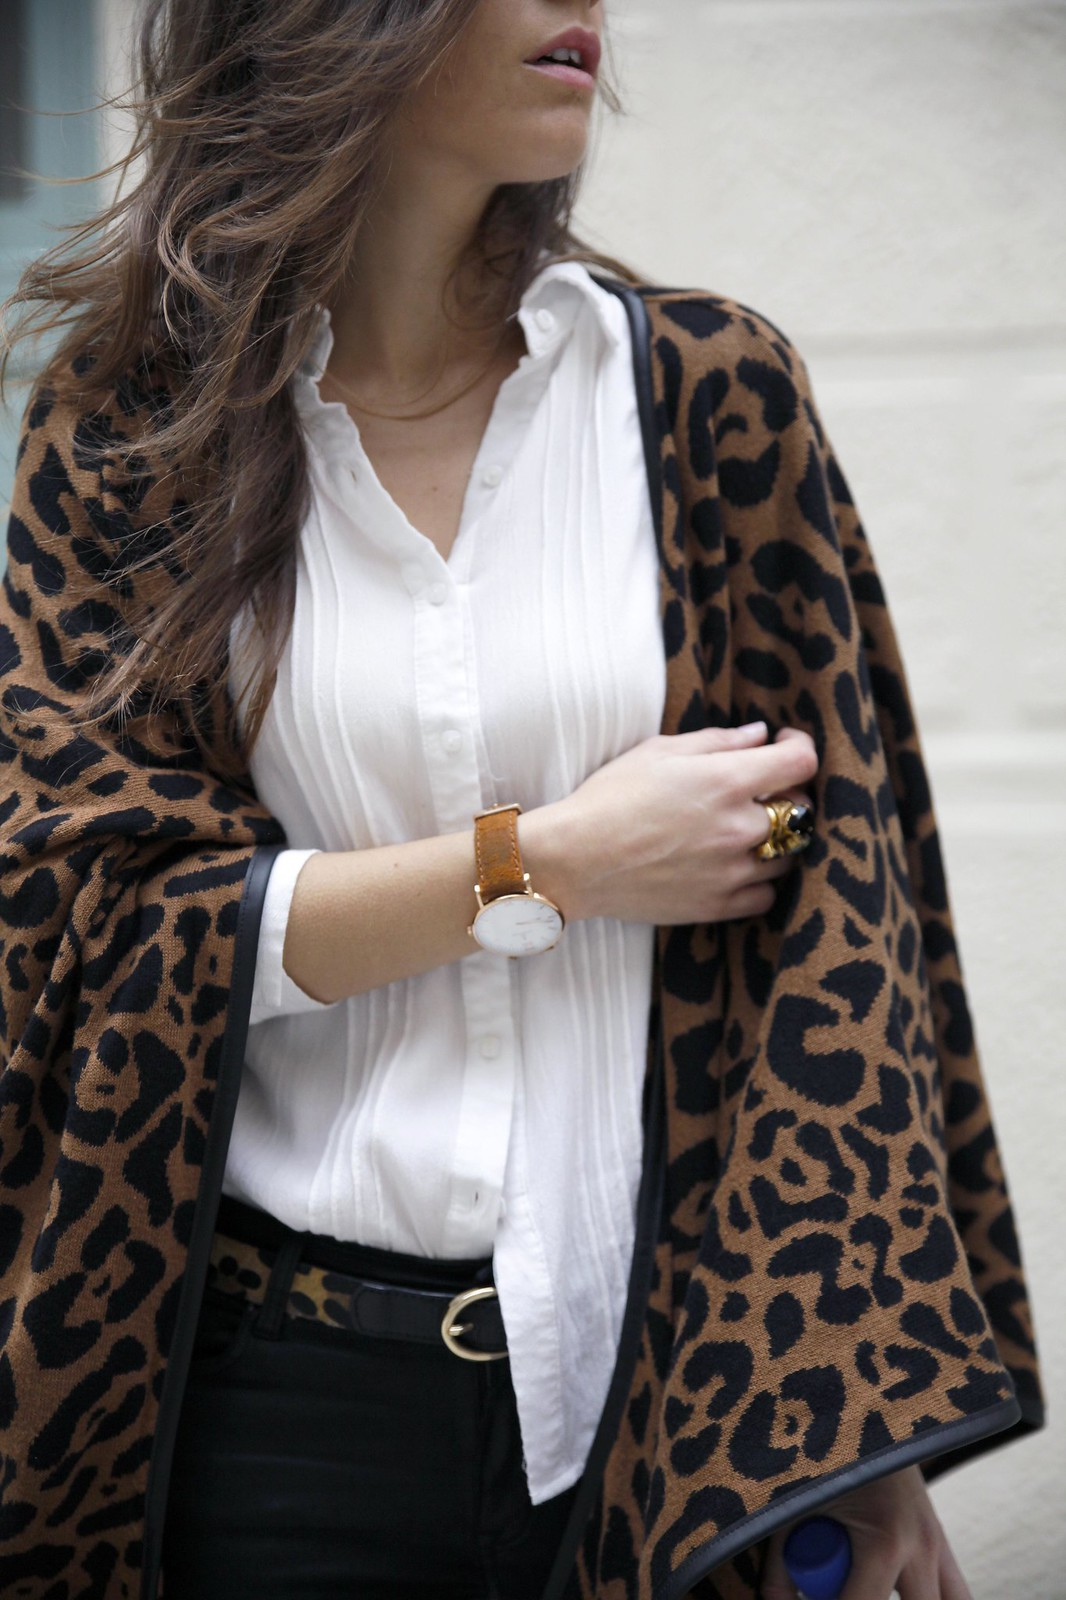 014_leopard_casual_look_with_ruga_theguestgirl_influencer_fashion_portugal_barcelona